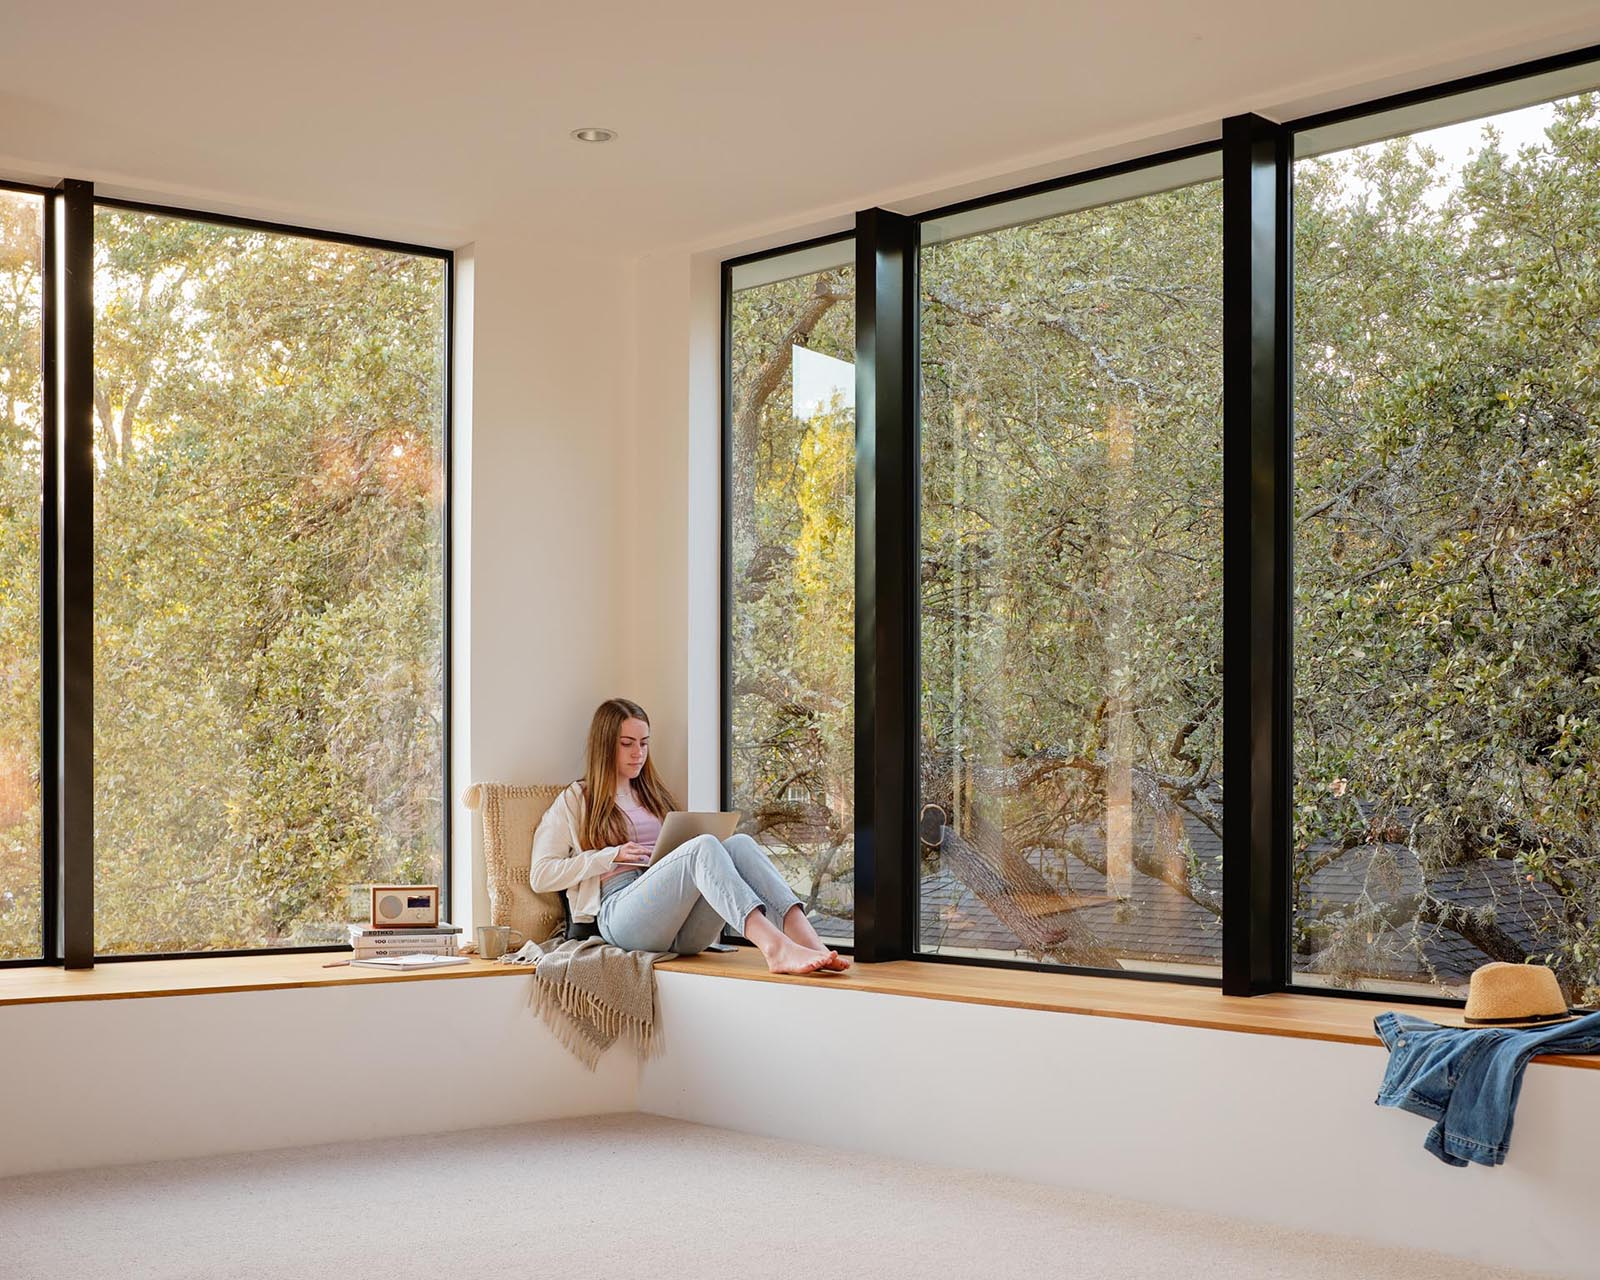 Large windows with a built-in window bench.